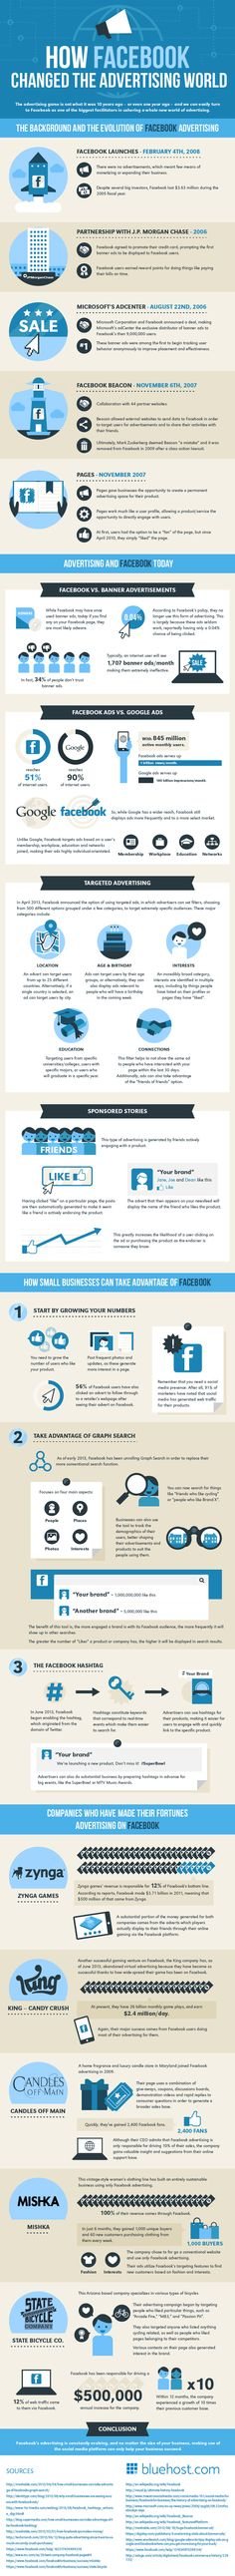 How FaceBook changed the Advertising World #infographic